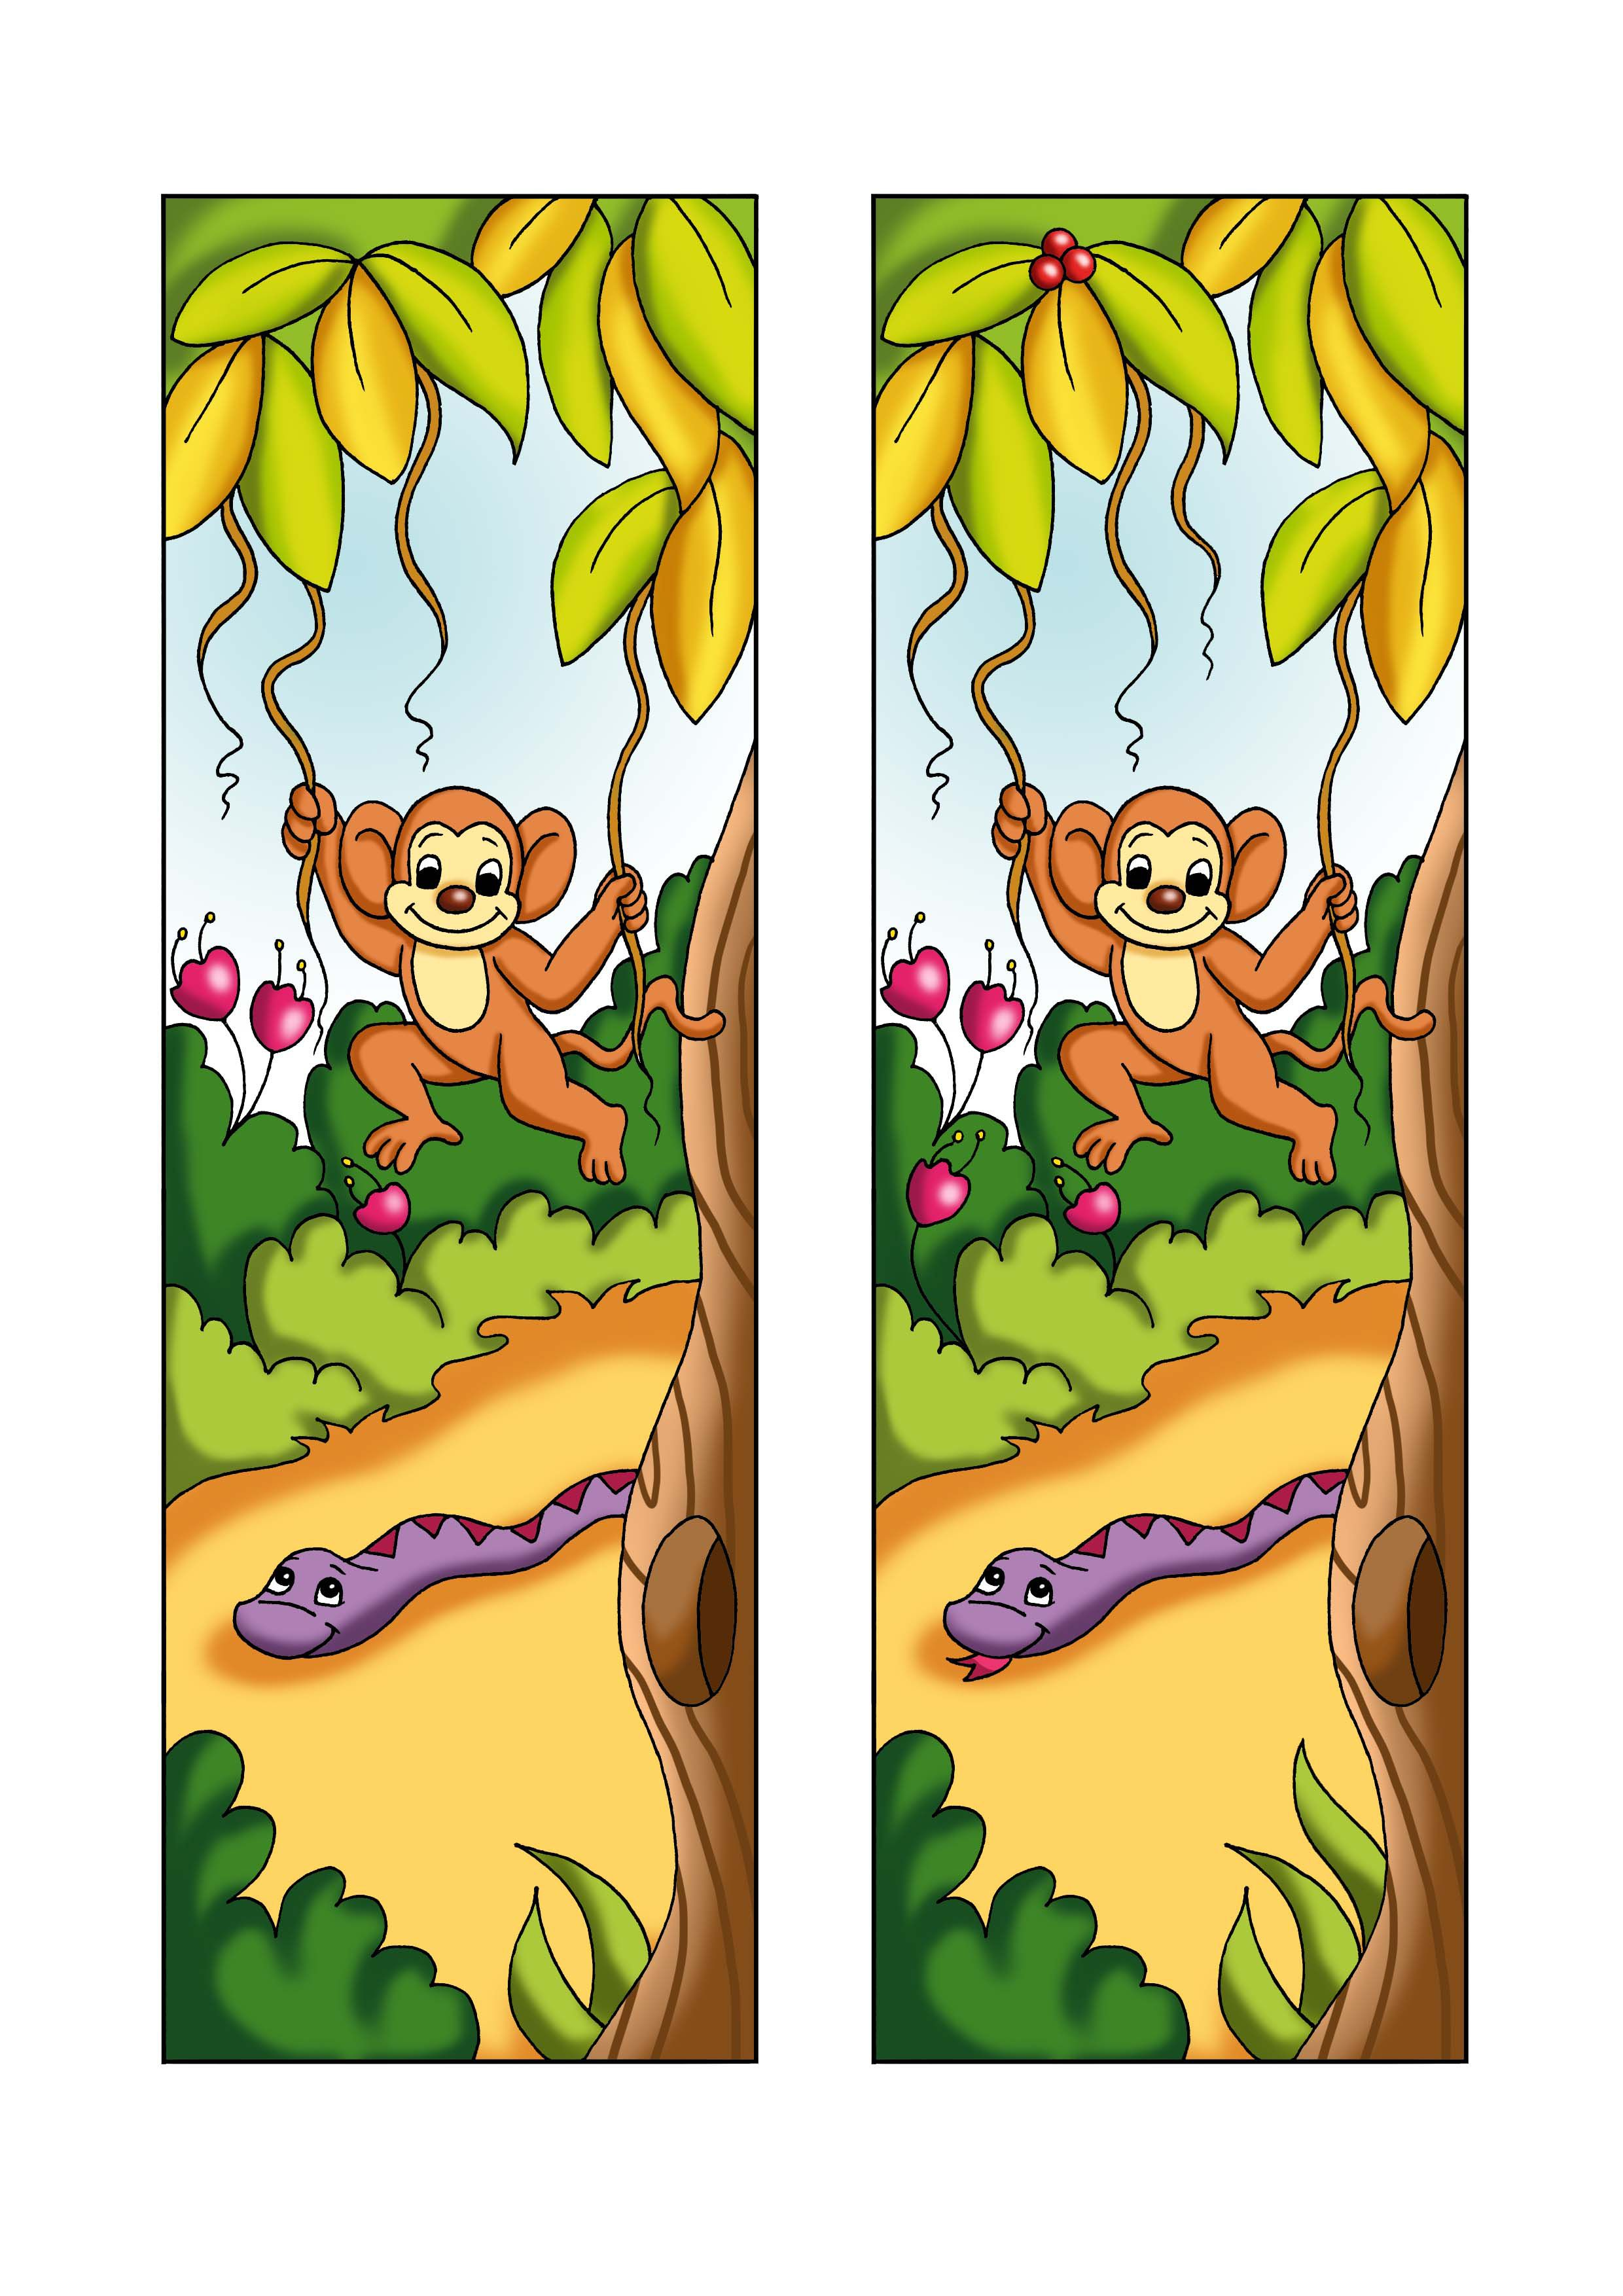 Find The Difference Printable Monkey Game